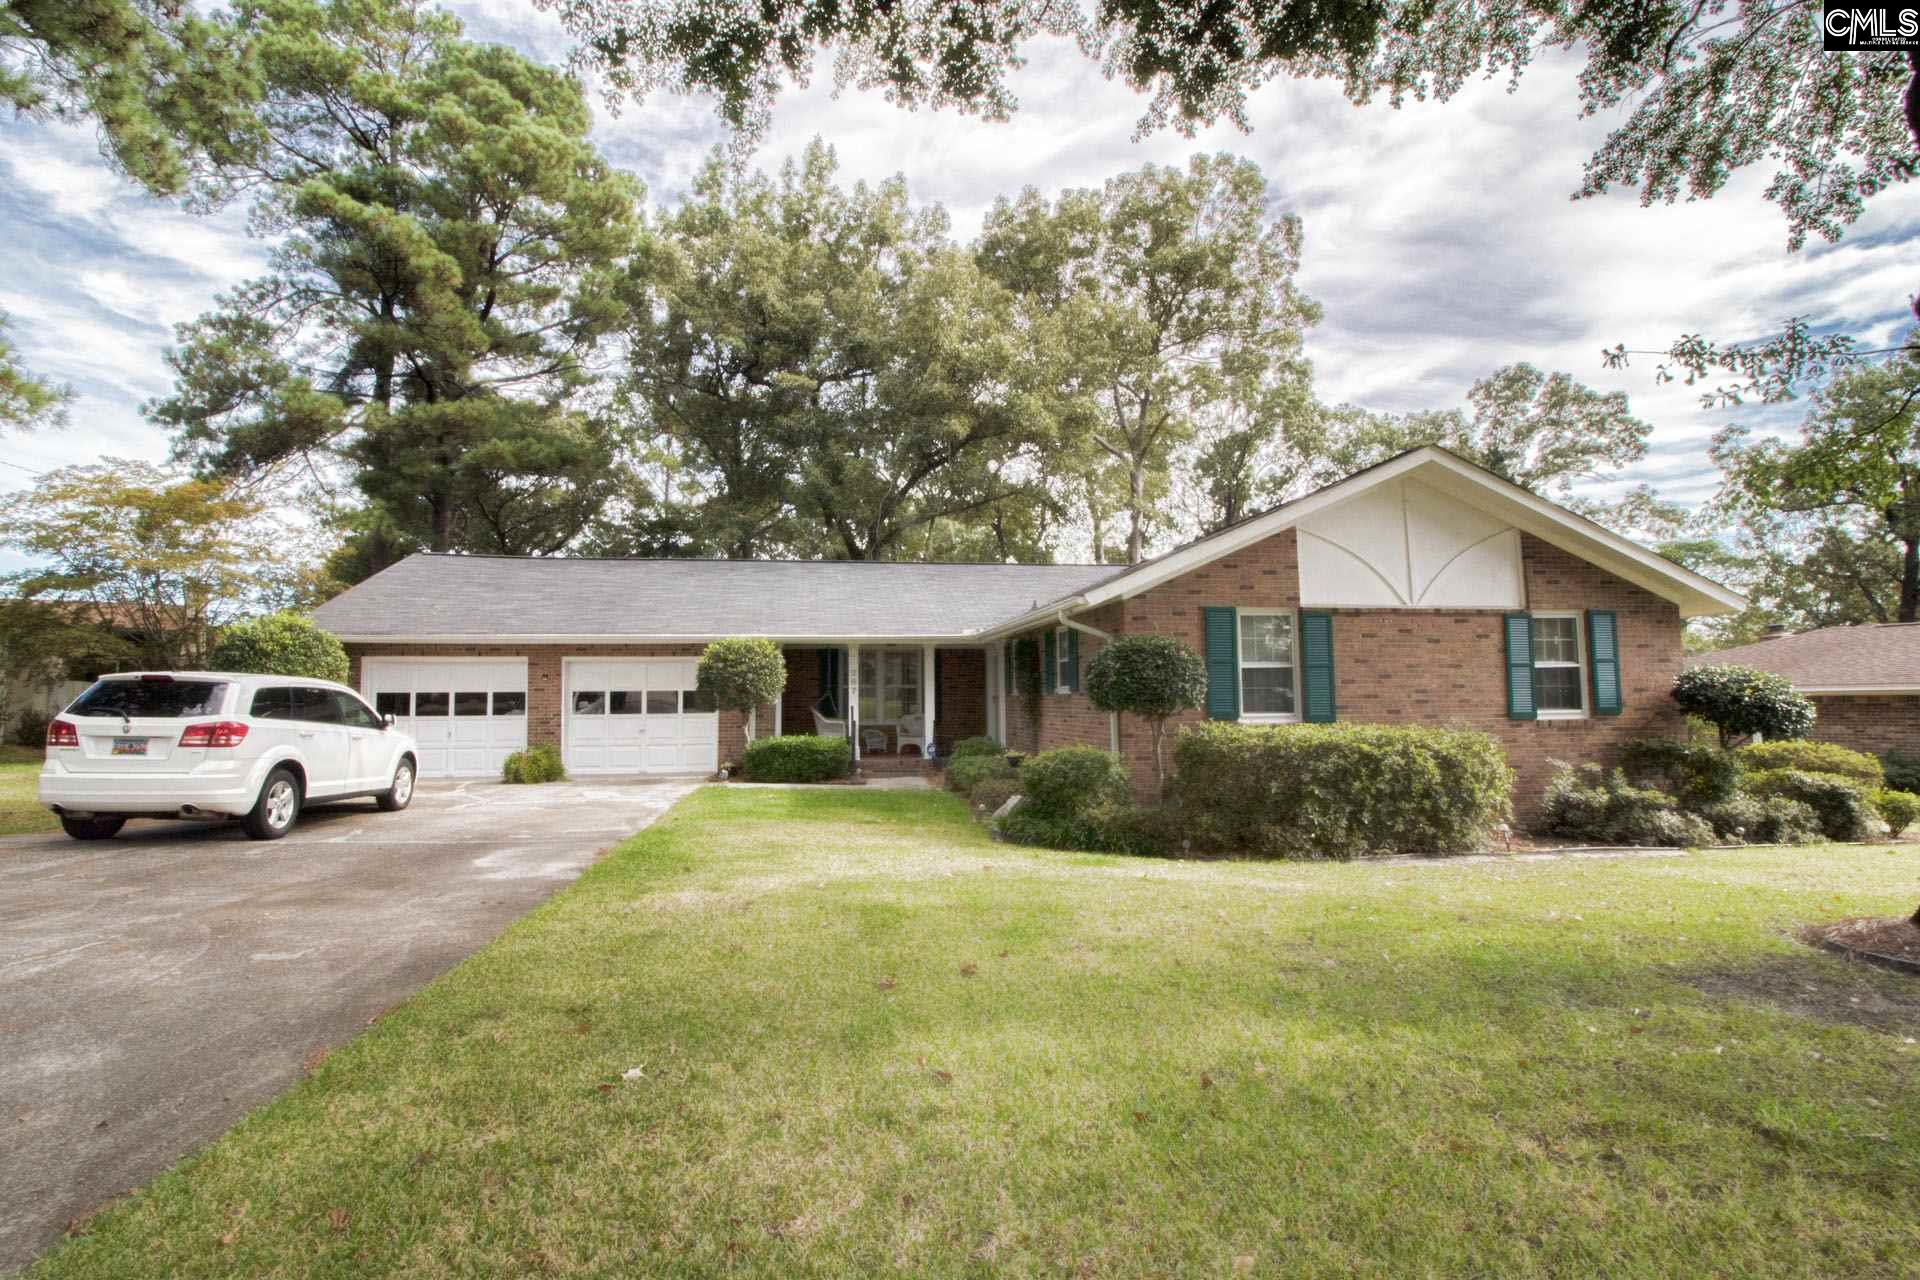 267 Marabou West Columbia, SC 29169